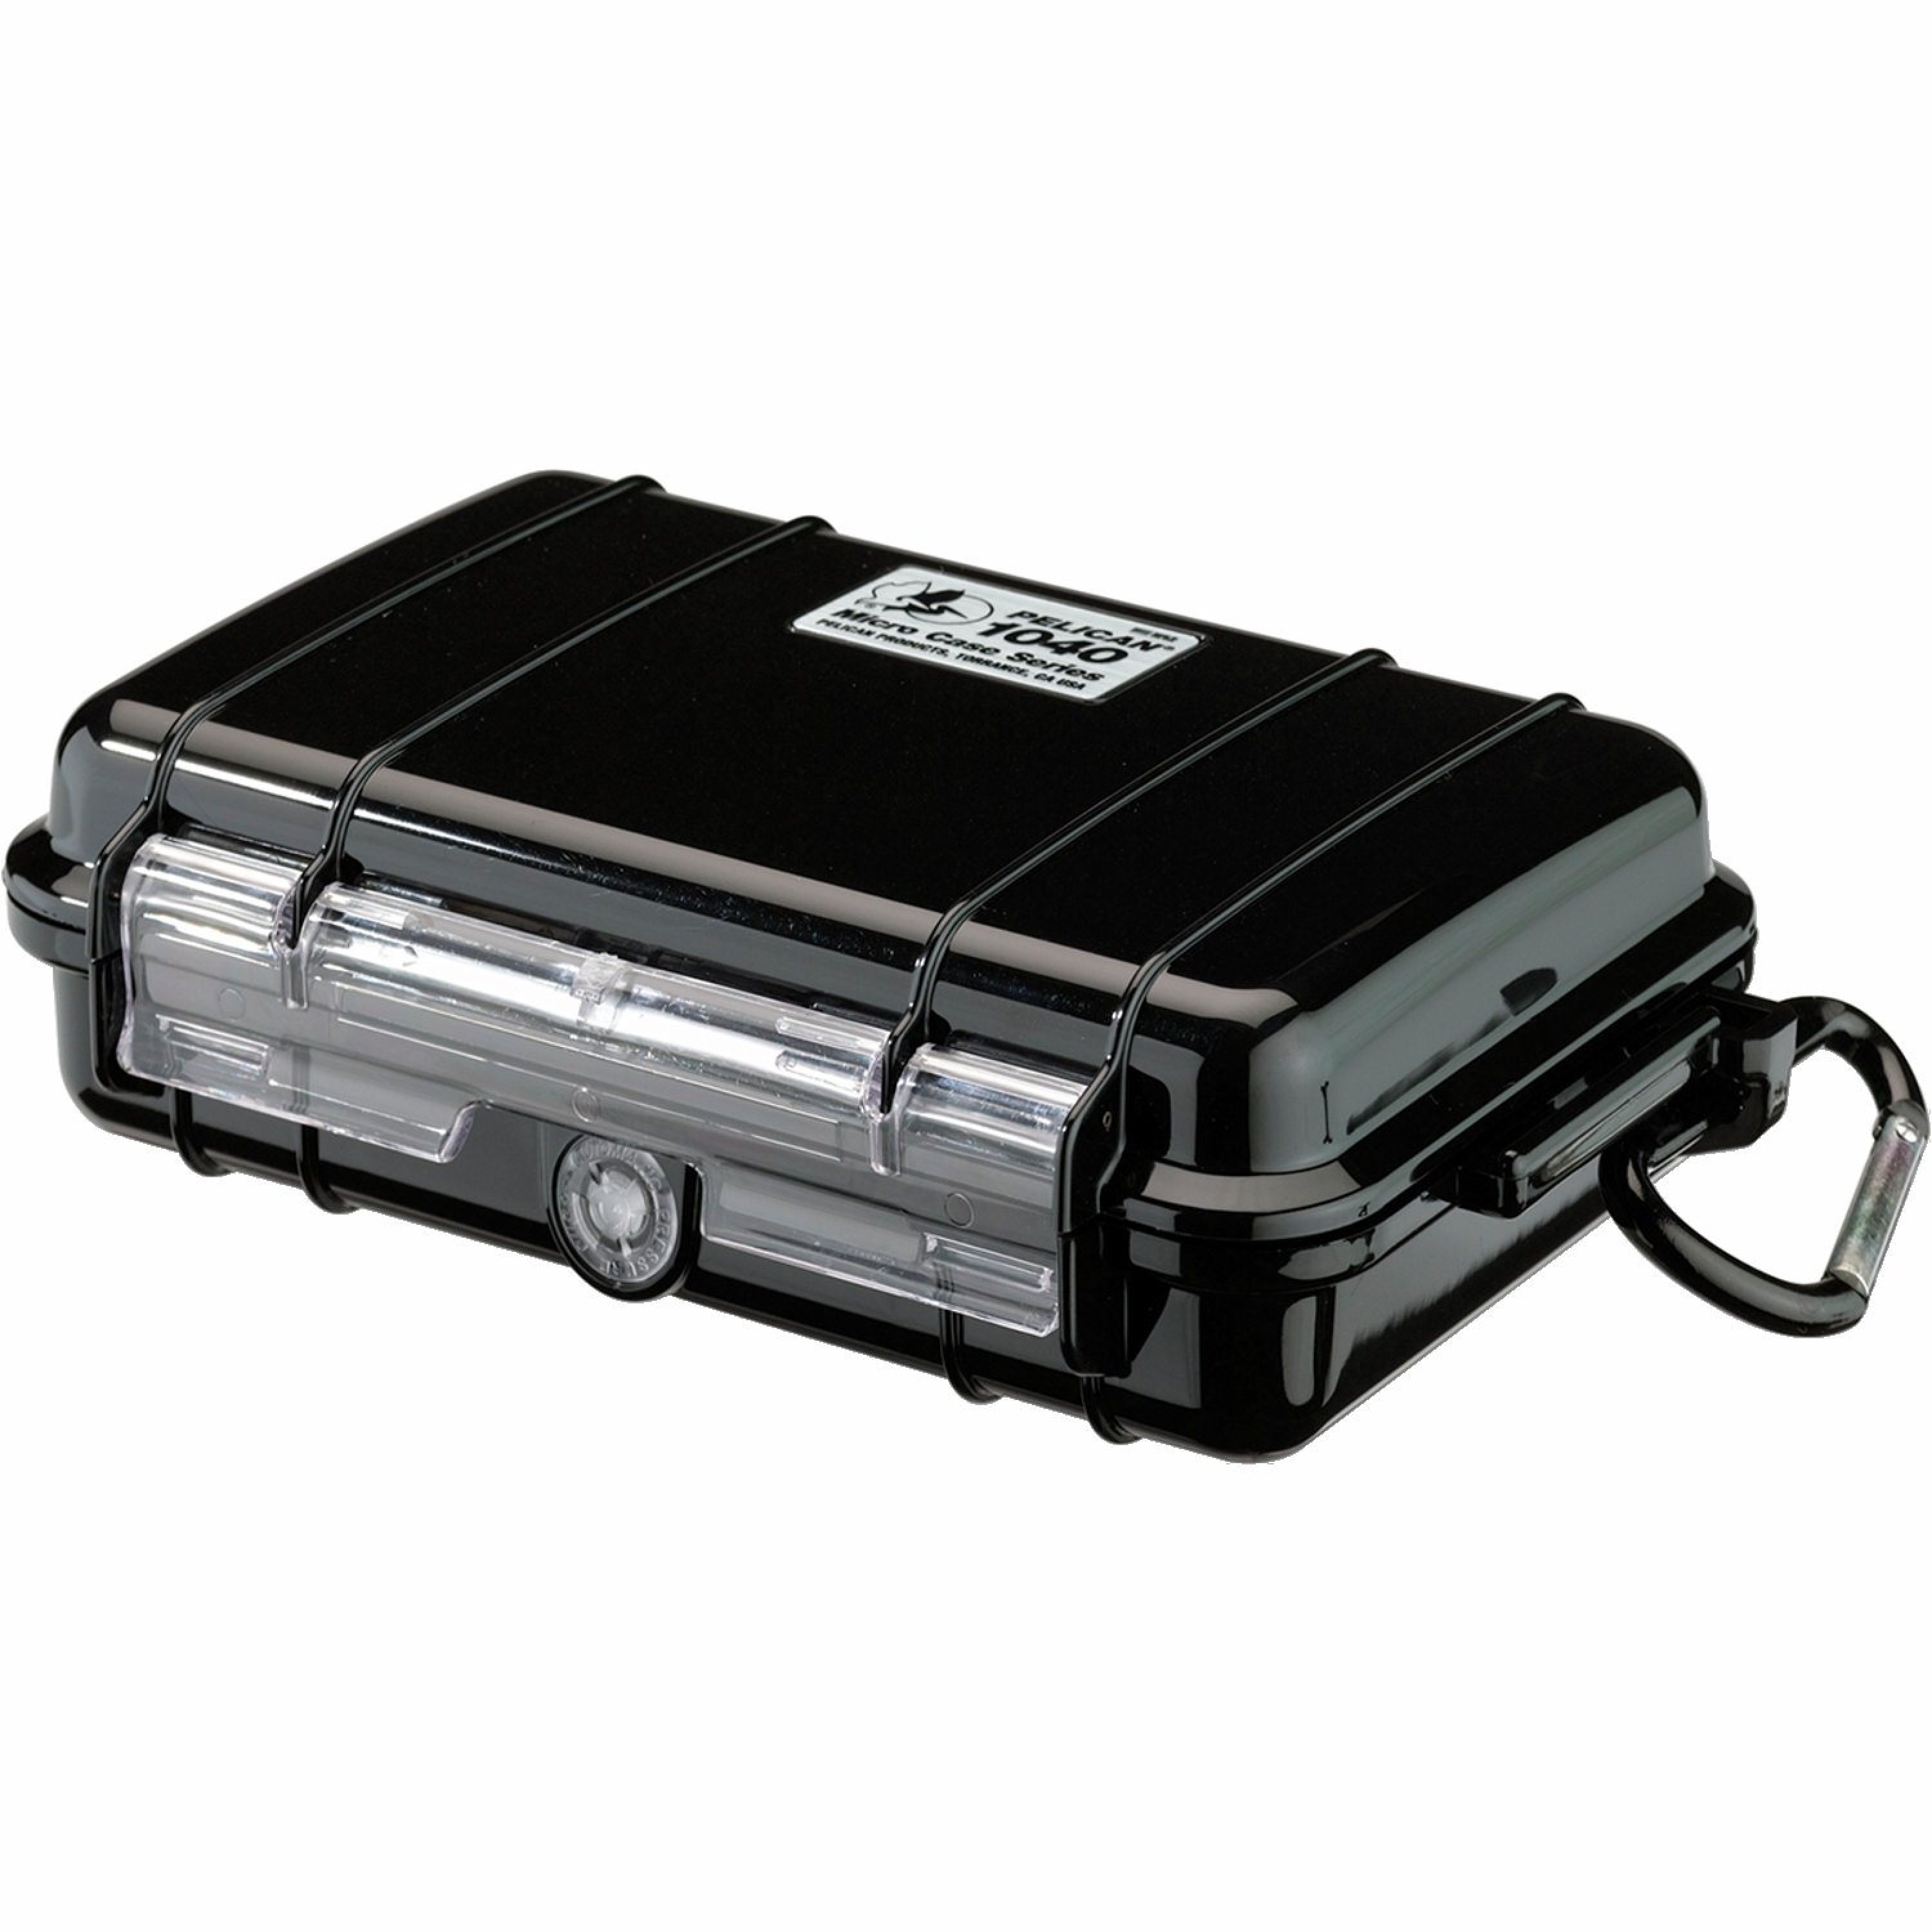 Micro Case 1040 Expedition Moose Racing